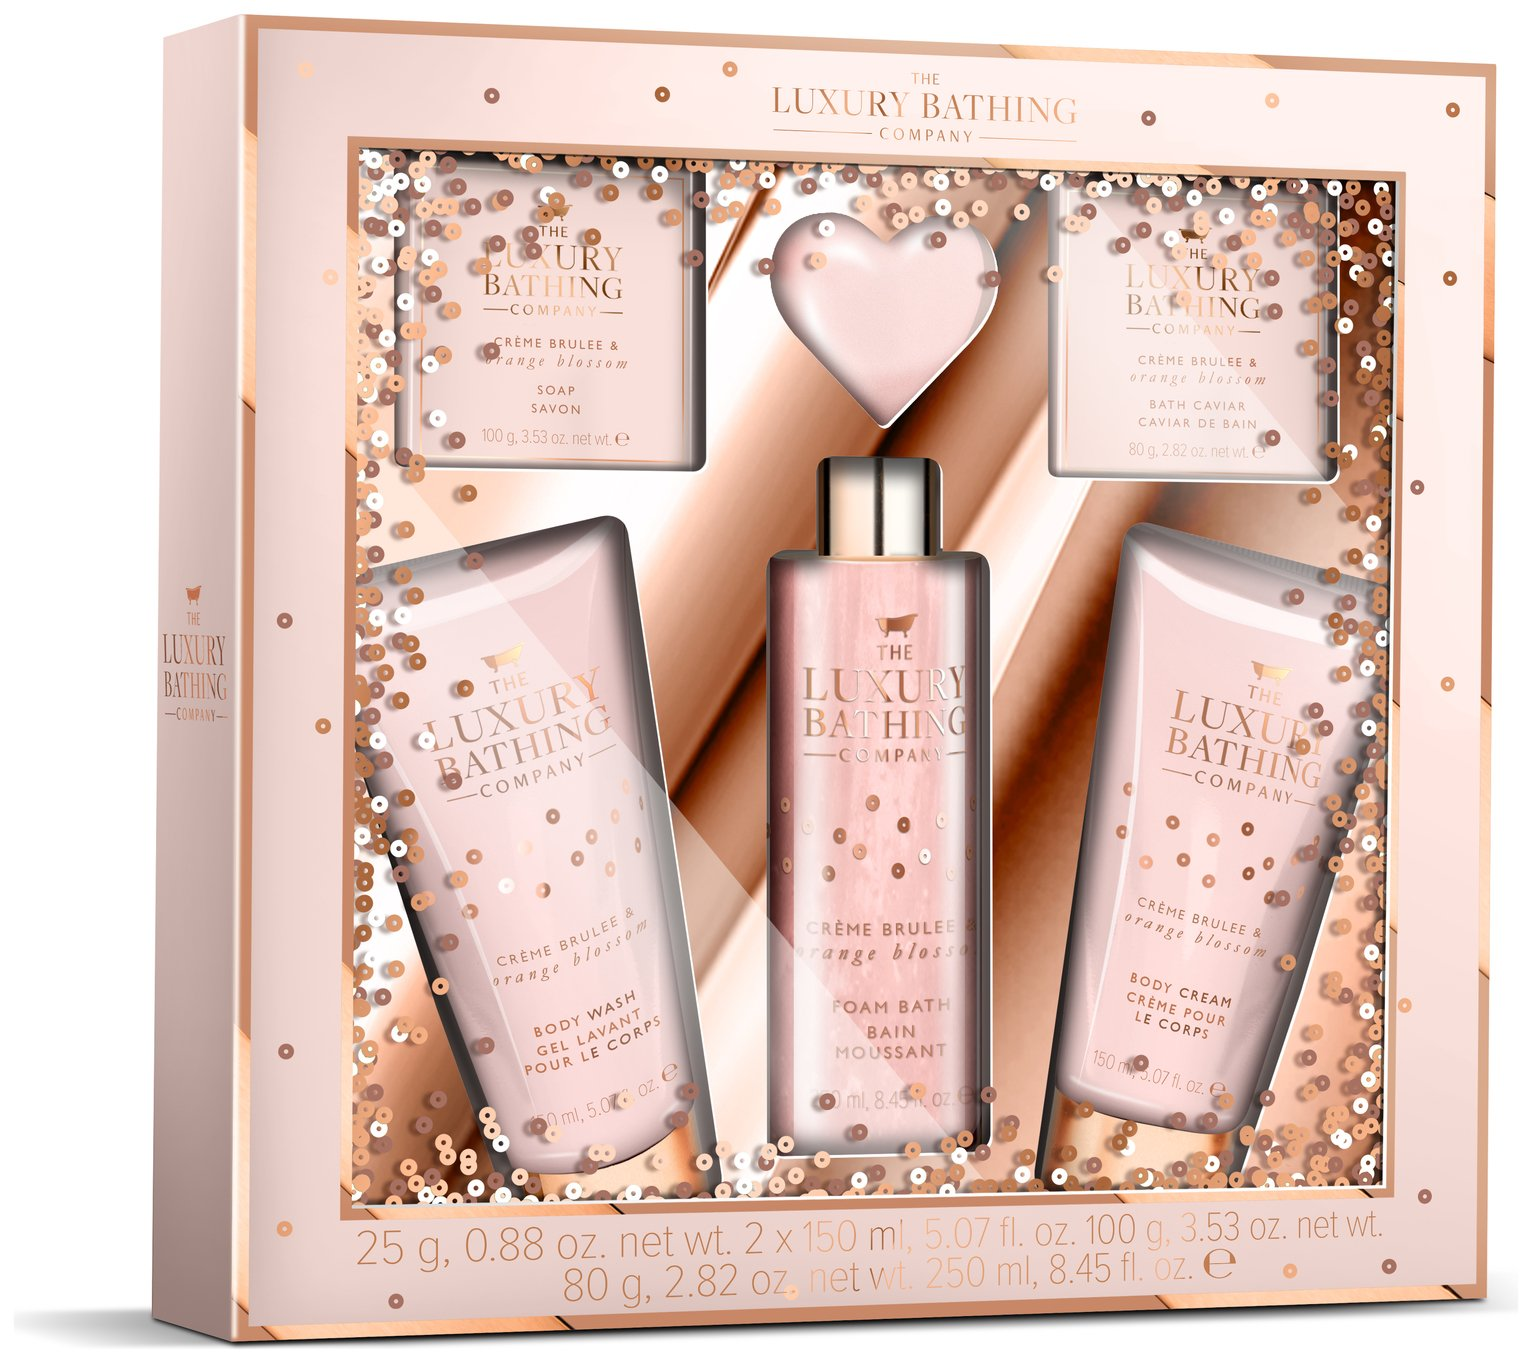 The Luxury Bathing Company Creme Brule Gift Set